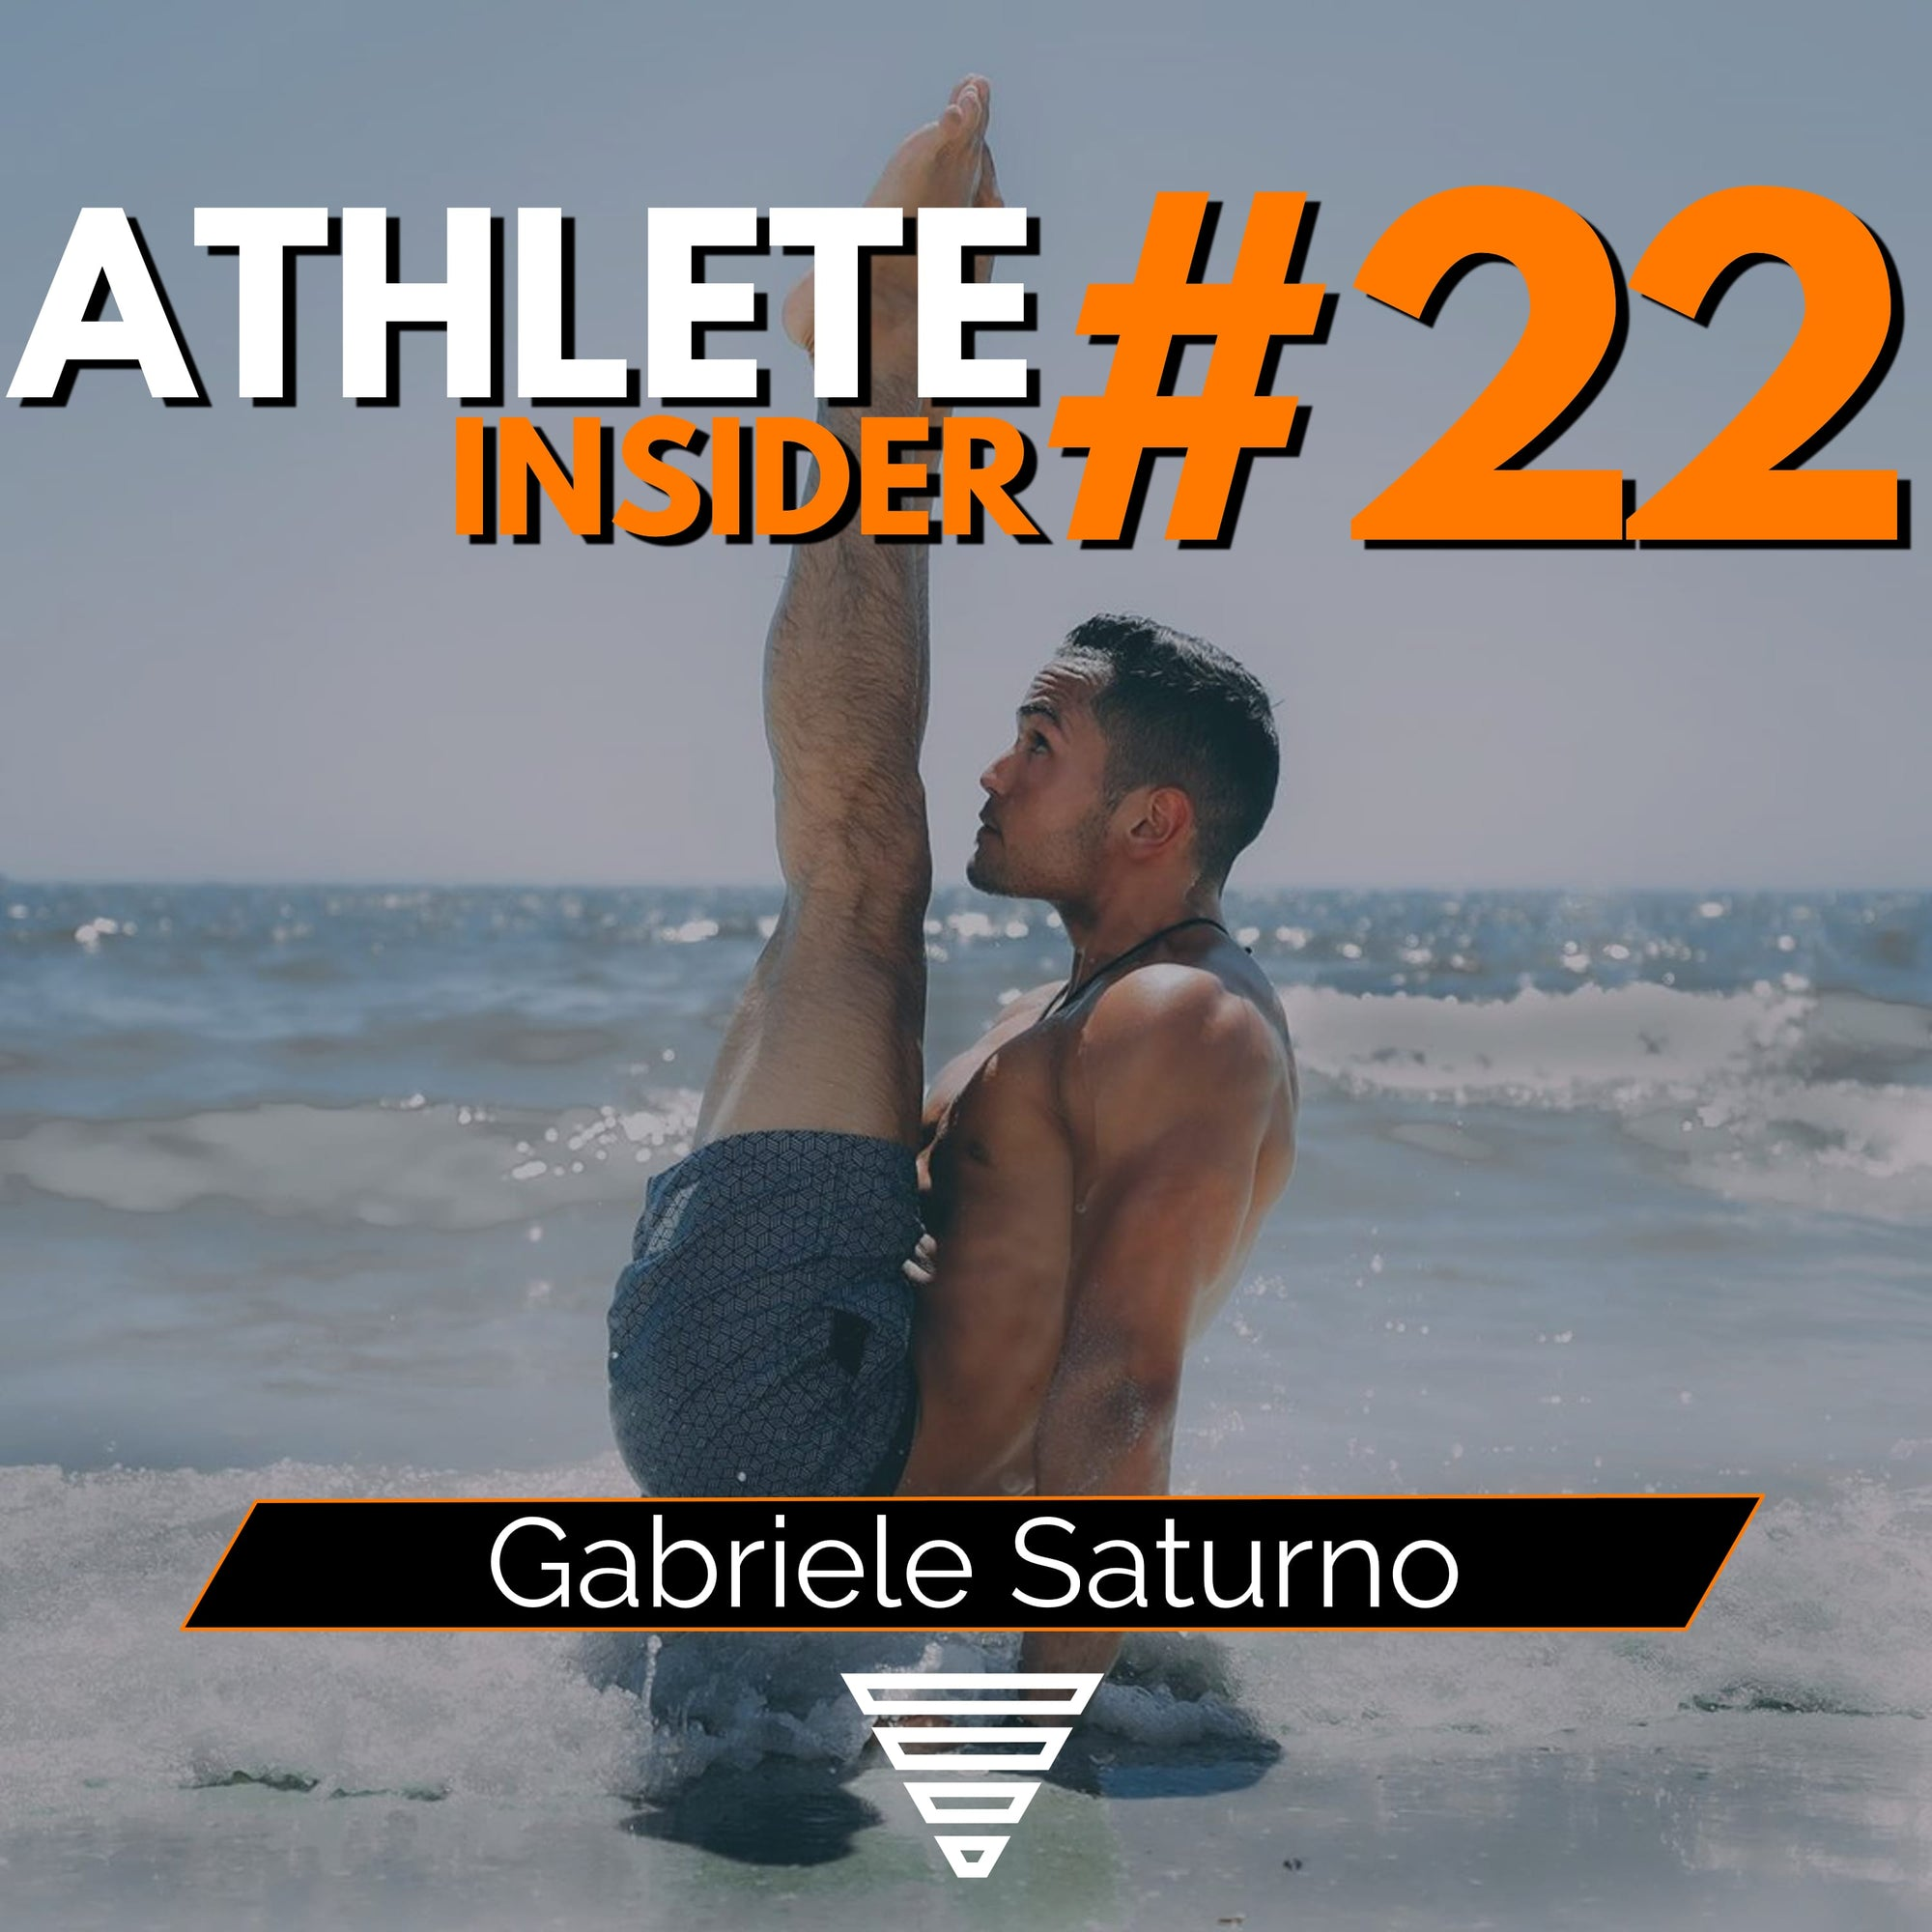 GABO SATURNO | Drugs, THENX, Training & Nutrition | Interview | The Athlete Insider Podcast #22